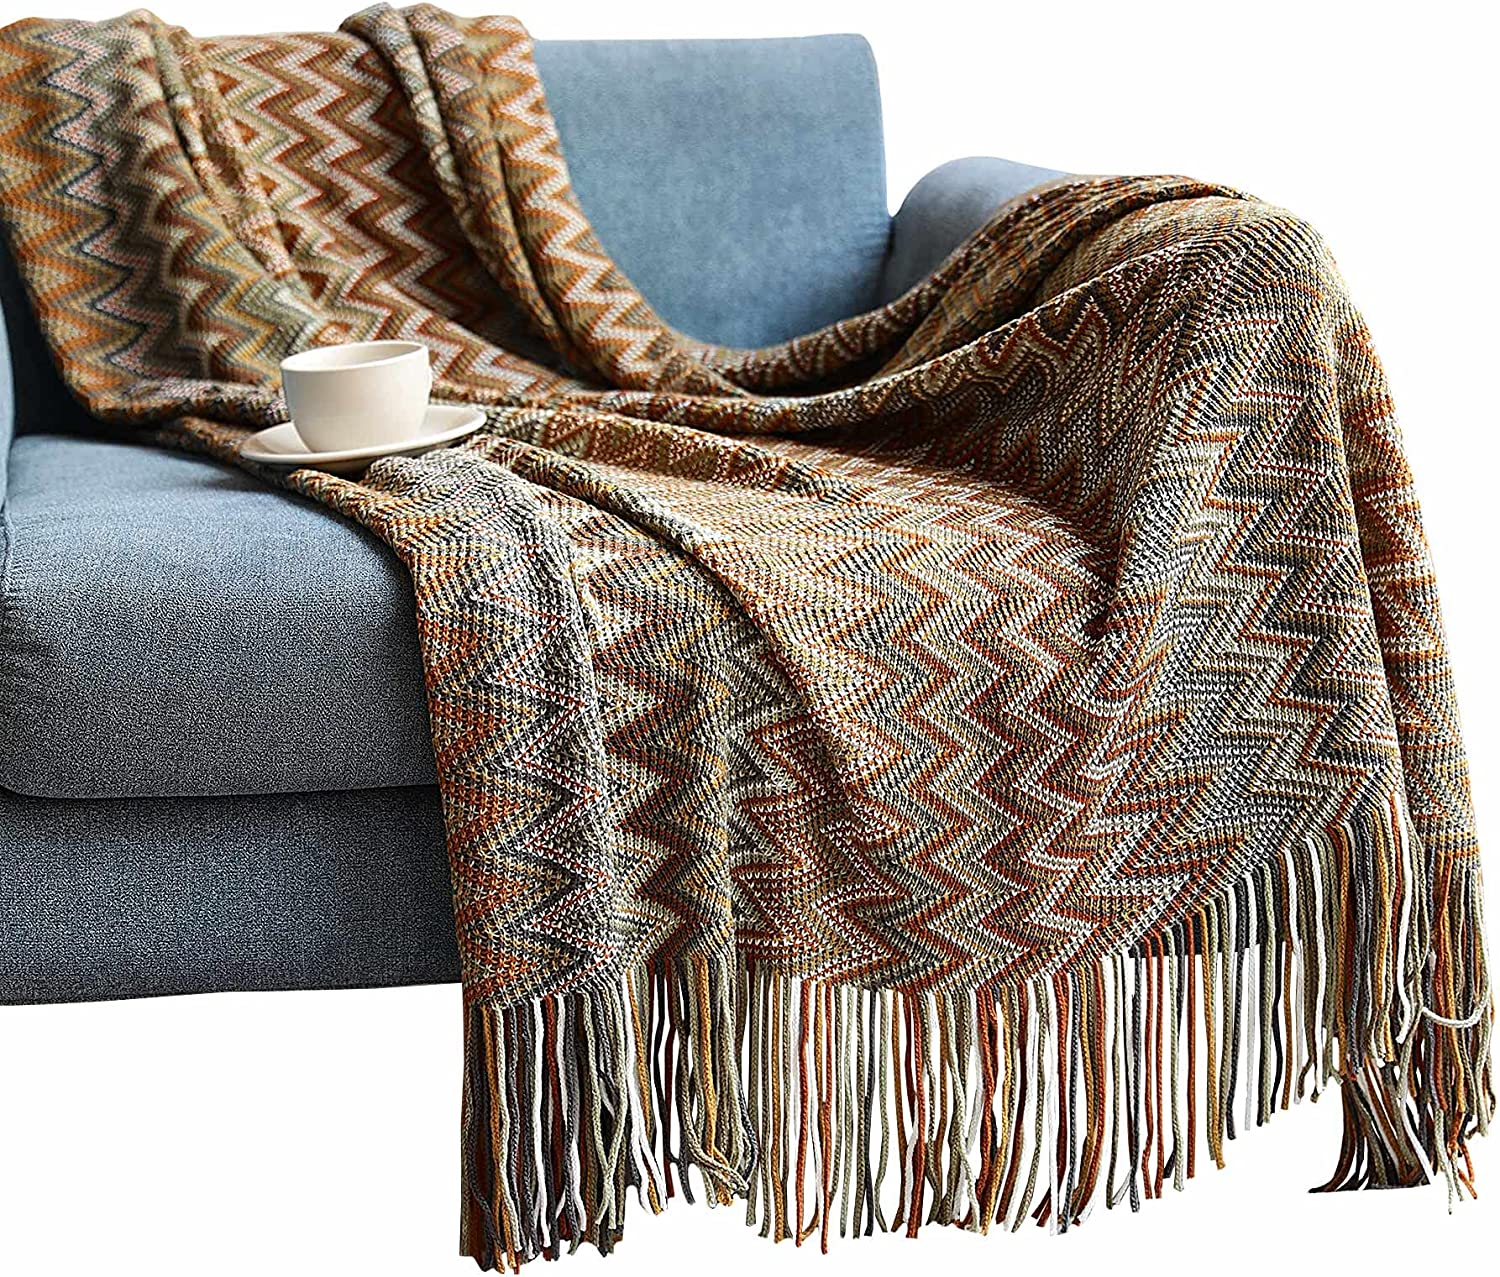 Avitalk Bohemian Sofa Max 86% OFF Bed Blanket Cozy Washington Mall with Soft Knitted Tassels